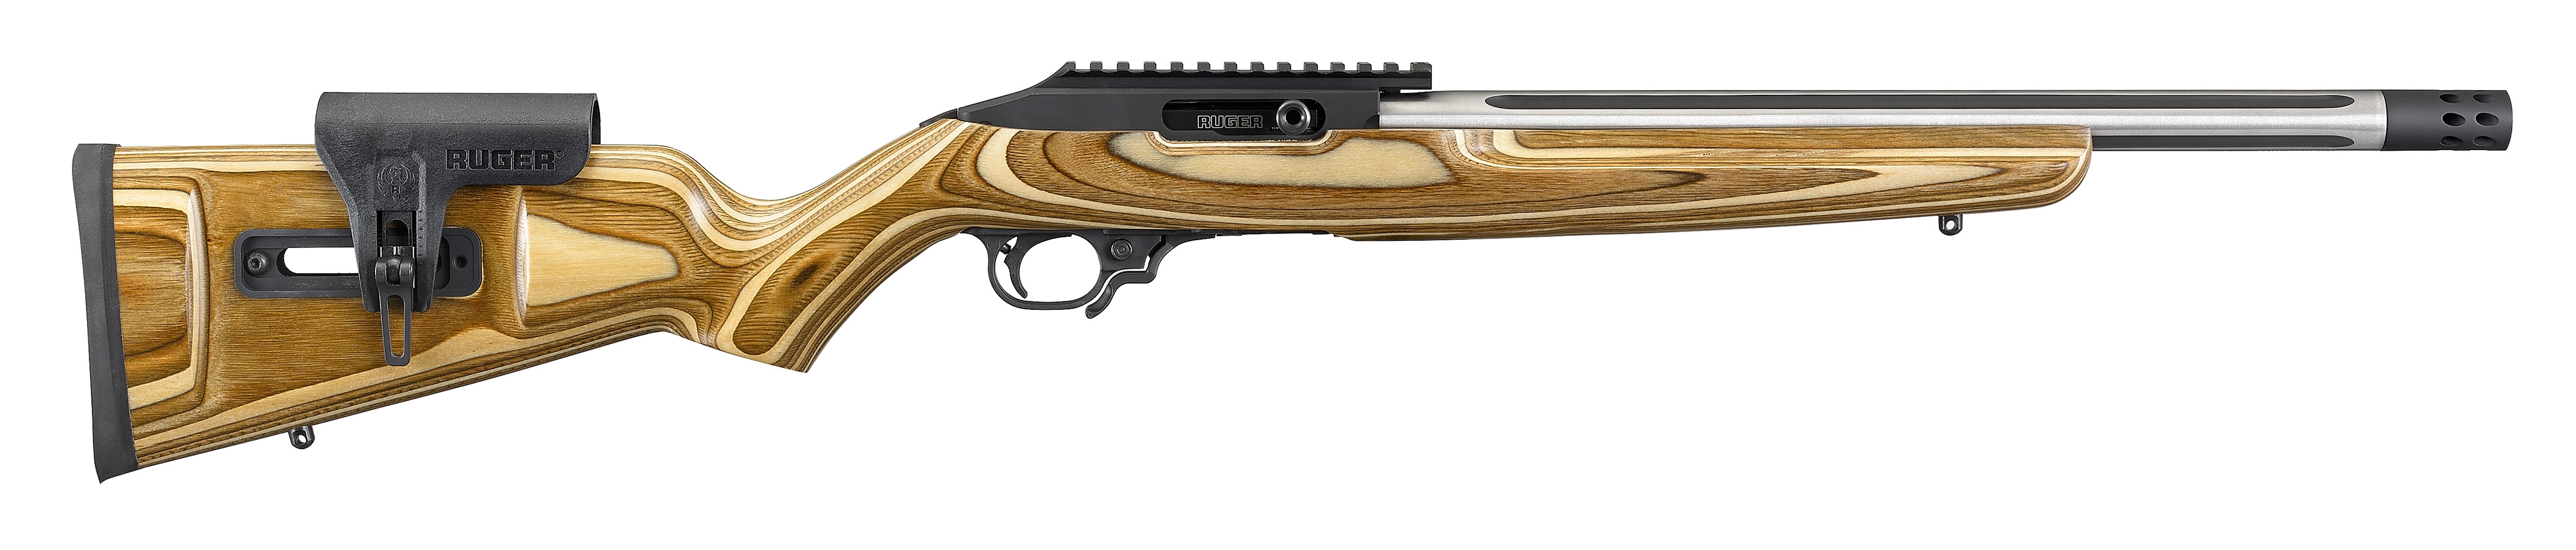 Ruger 10/22 Stainless 22 LR